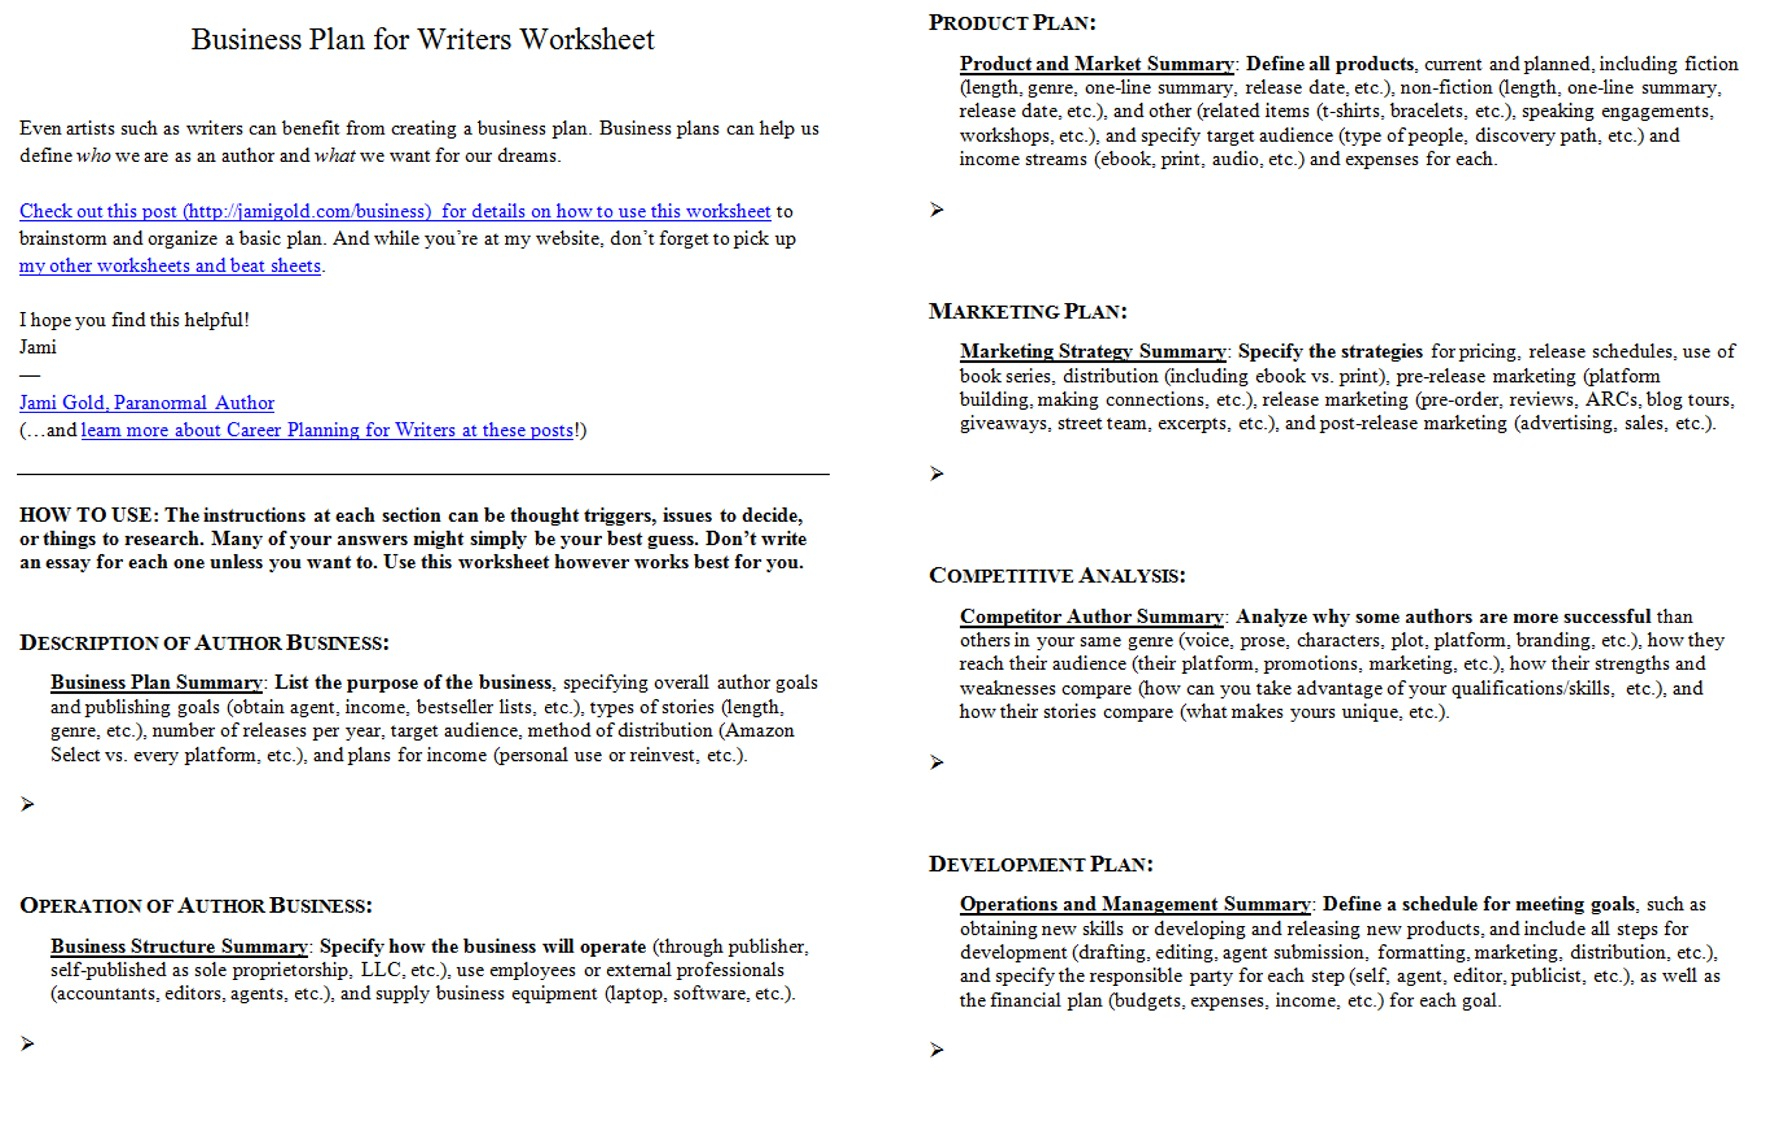 Weirdmailus  Pleasant Worksheets For Writers  Jami Gold Paranormal Author With Foxy Screen Shot Of Both Pages Of The Business Plan For Writers Worksheet With Comely Solar And Lunar Eclipse Worksheet Also Grammar Worksheets For Th Grade In Addition Worksheets For Grade  And Solving Addition And Subtraction Equations Worksheets As Well As Balancing Chemical Equations Worksheet  Additionally Dilation Practice Worksheet From Jamigoldcom With Weirdmailus  Foxy Worksheets For Writers  Jami Gold Paranormal Author With Comely Screen Shot Of Both Pages Of The Business Plan For Writers Worksheet And Pleasant Solar And Lunar Eclipse Worksheet Also Grammar Worksheets For Th Grade In Addition Worksheets For Grade  From Jamigoldcom